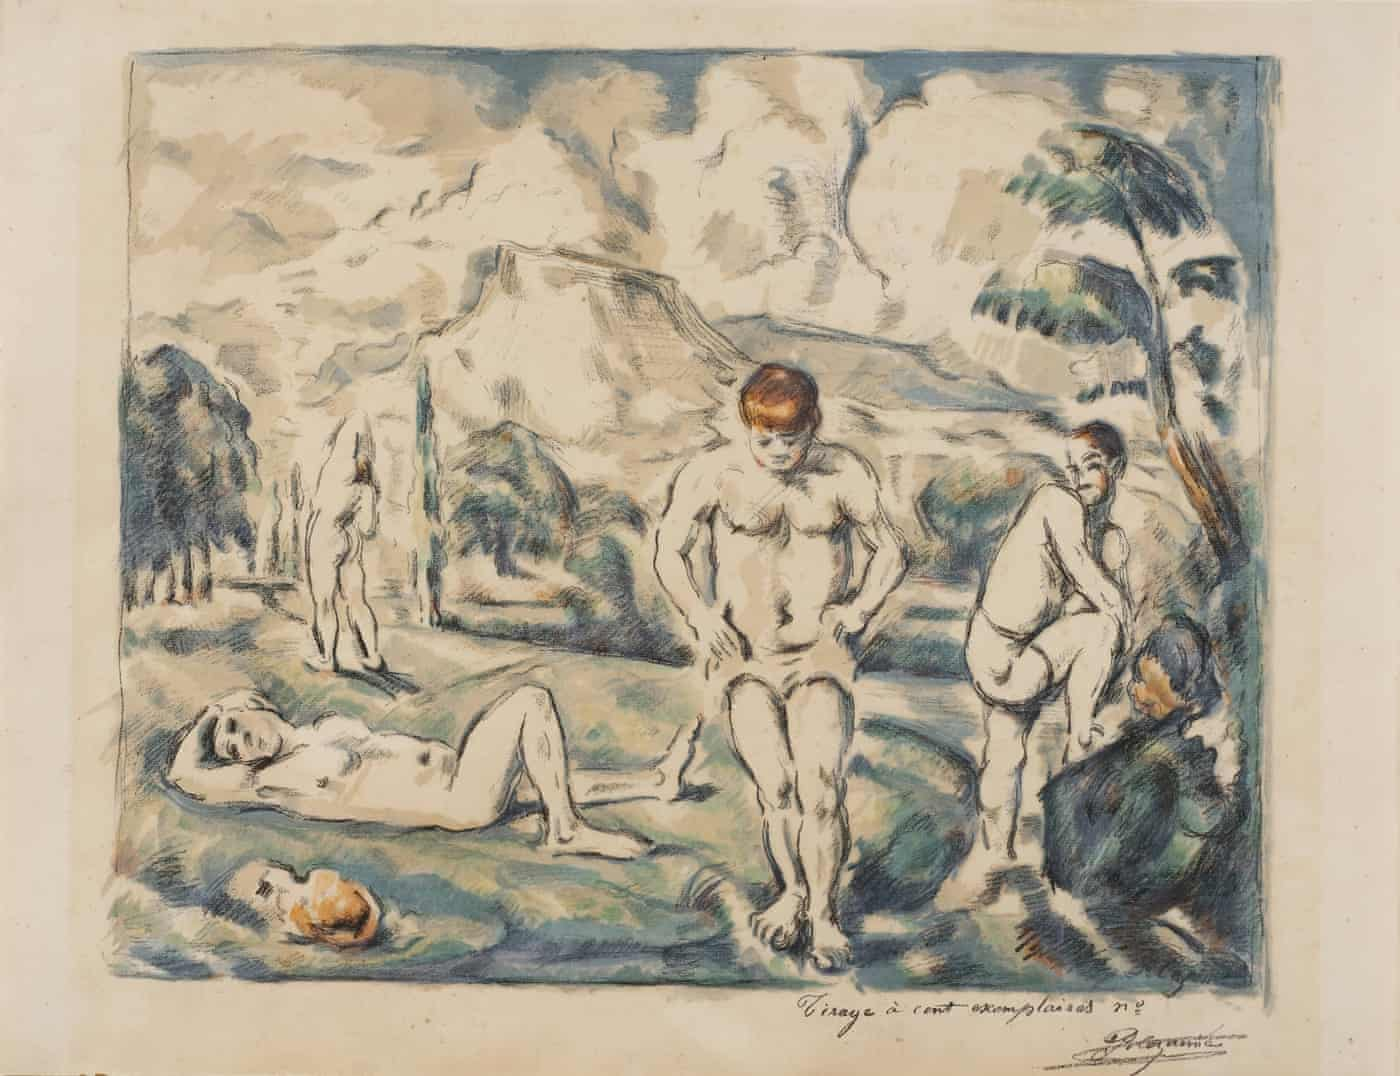 Cézanne captivates Manchester and Tudor England rears its many faces – the week in art